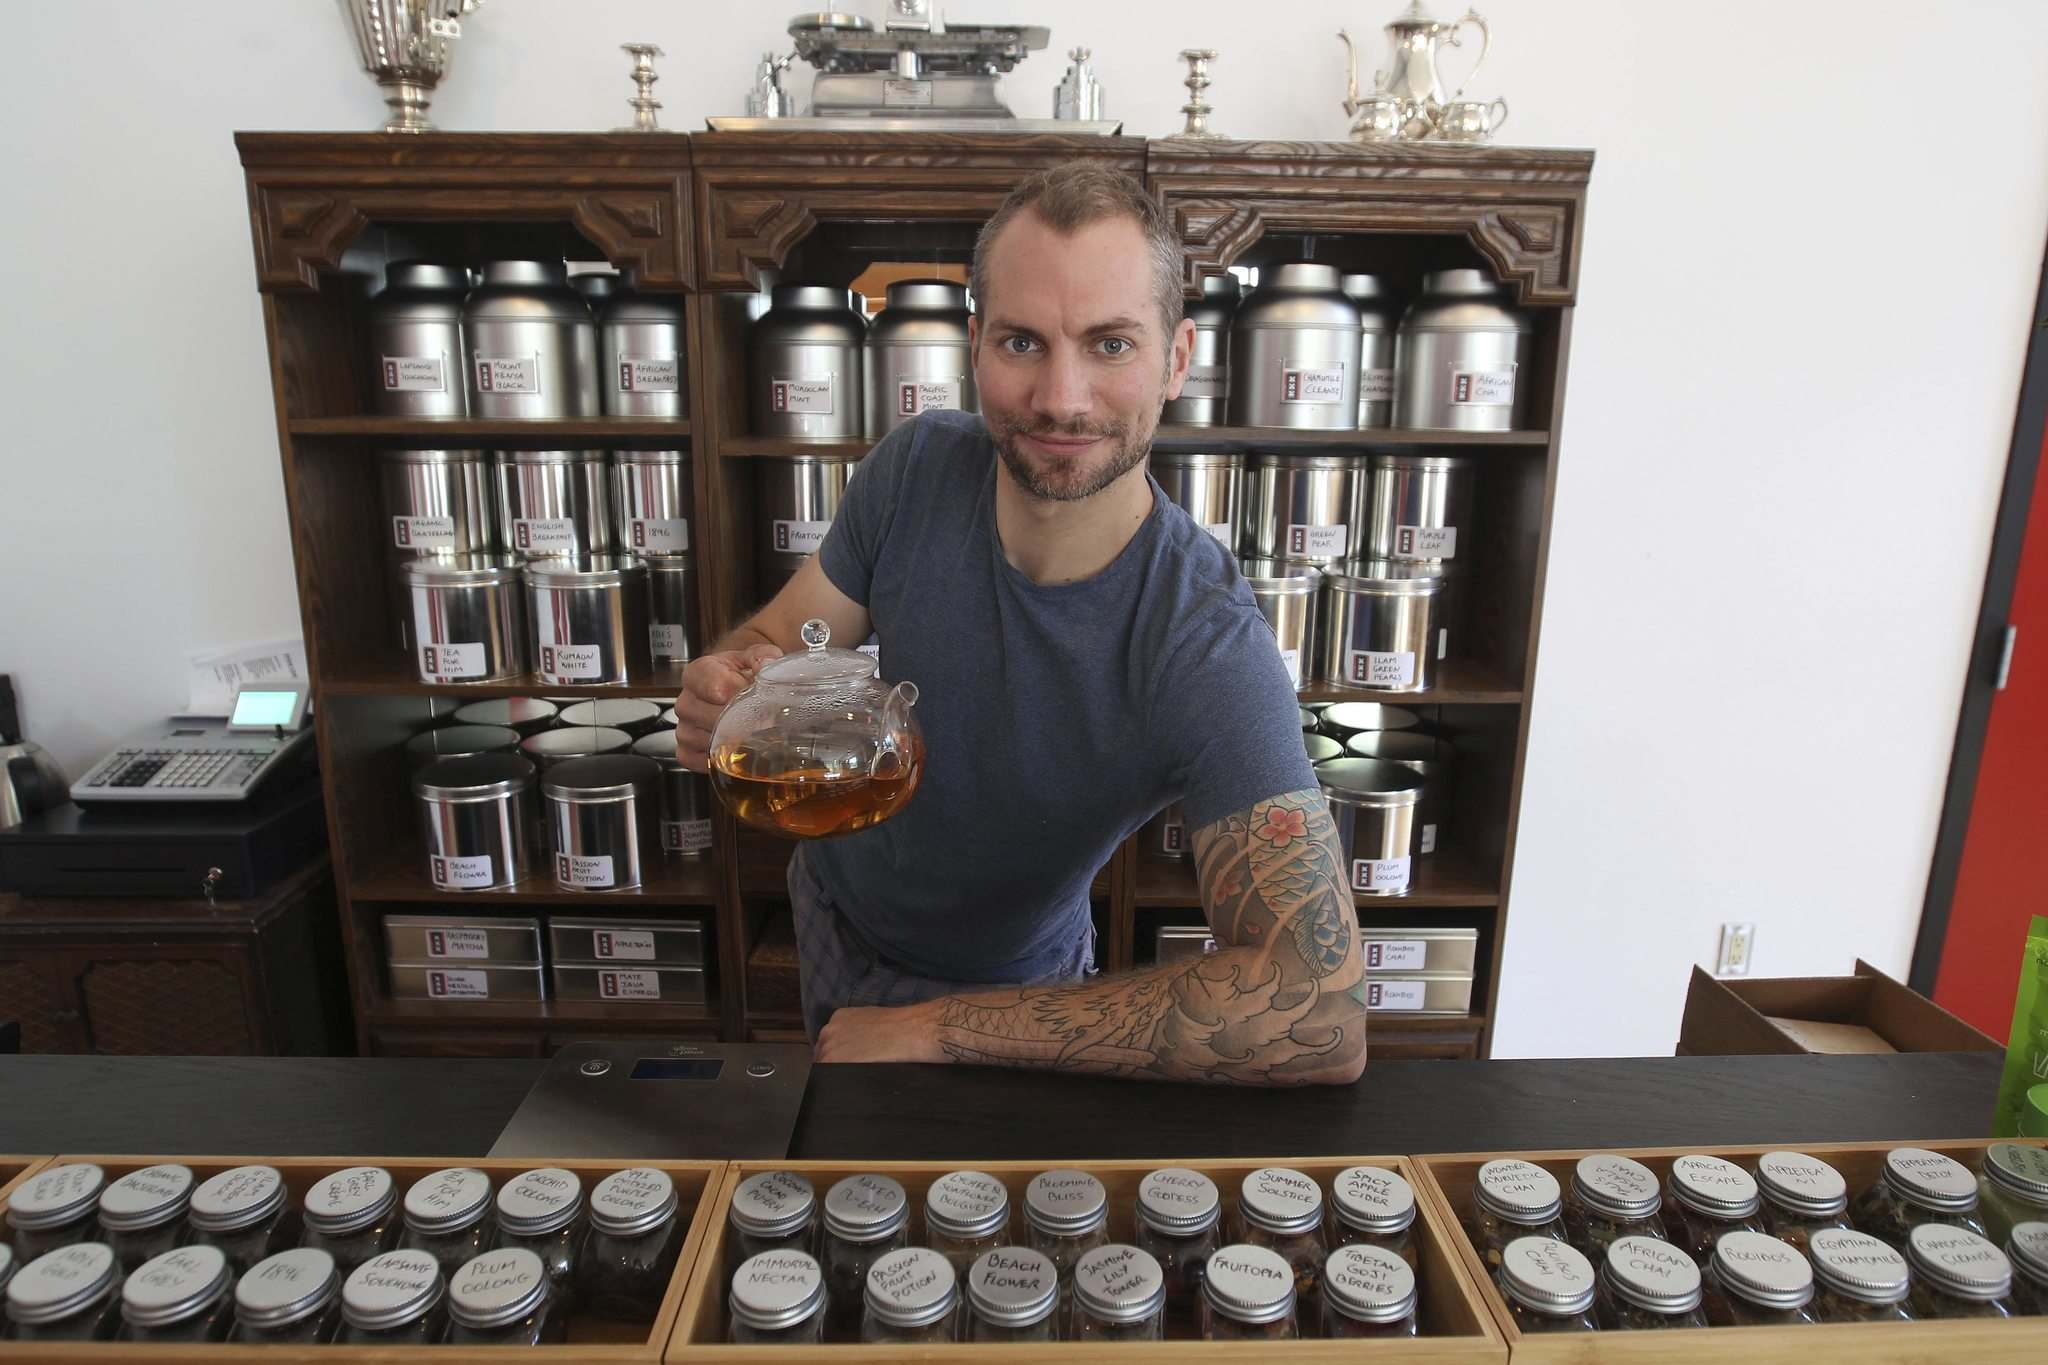 JOE BRYKSA / WINNIPEG FREE PRESS</p><p>Mark Turner came to Canada with the dream of opening a scotch bar, but ended up joining forces with Dan Card to create the Amsterdam Tea Room, which opens Sunday.</p>